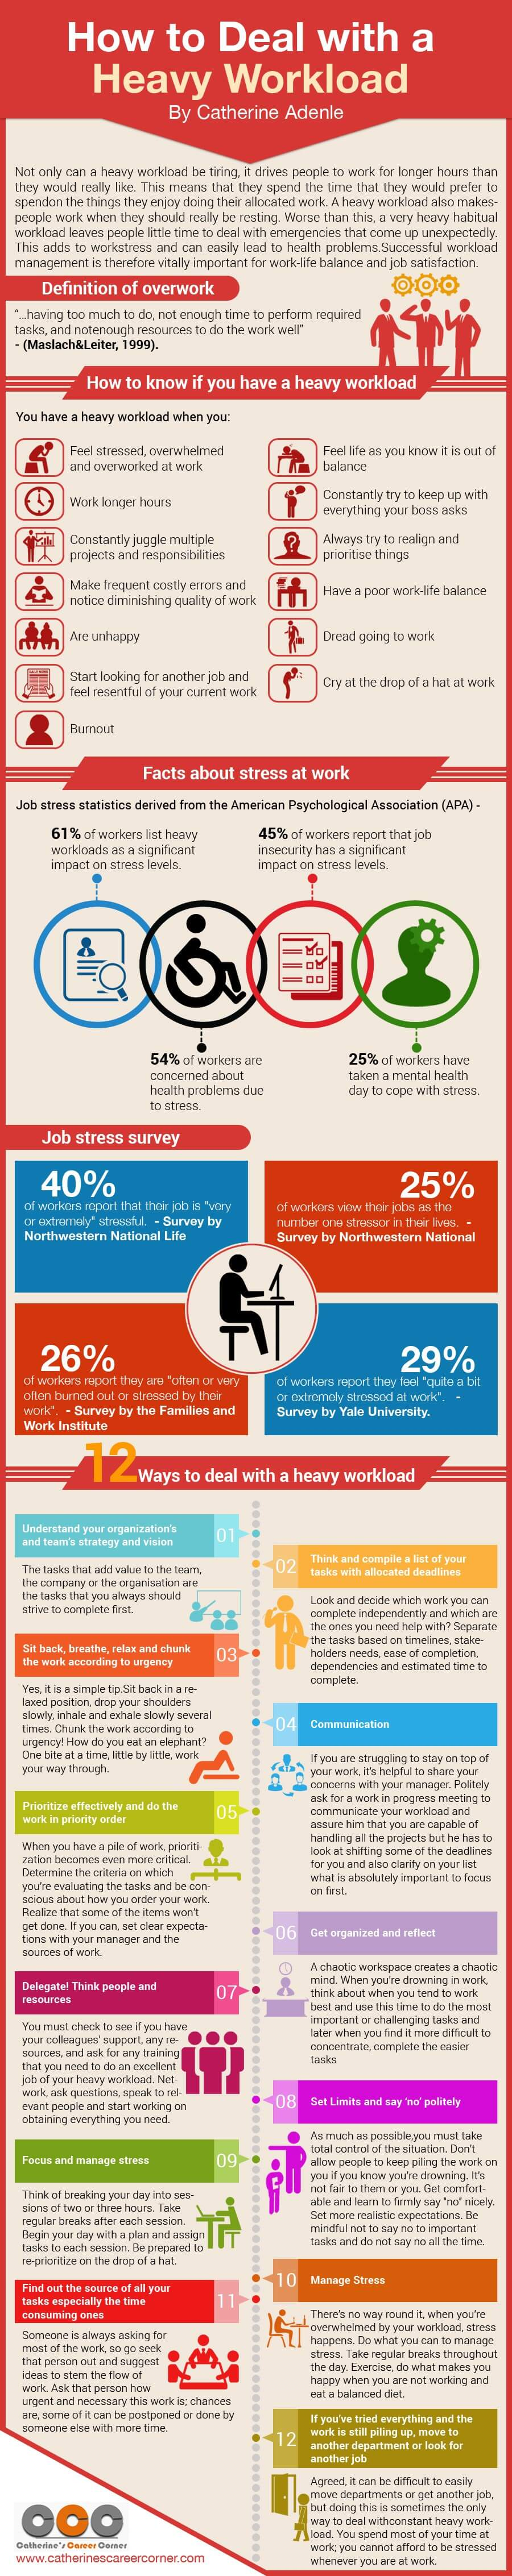 How-to-Deal-with-a-Heavy-Workload-Infographic